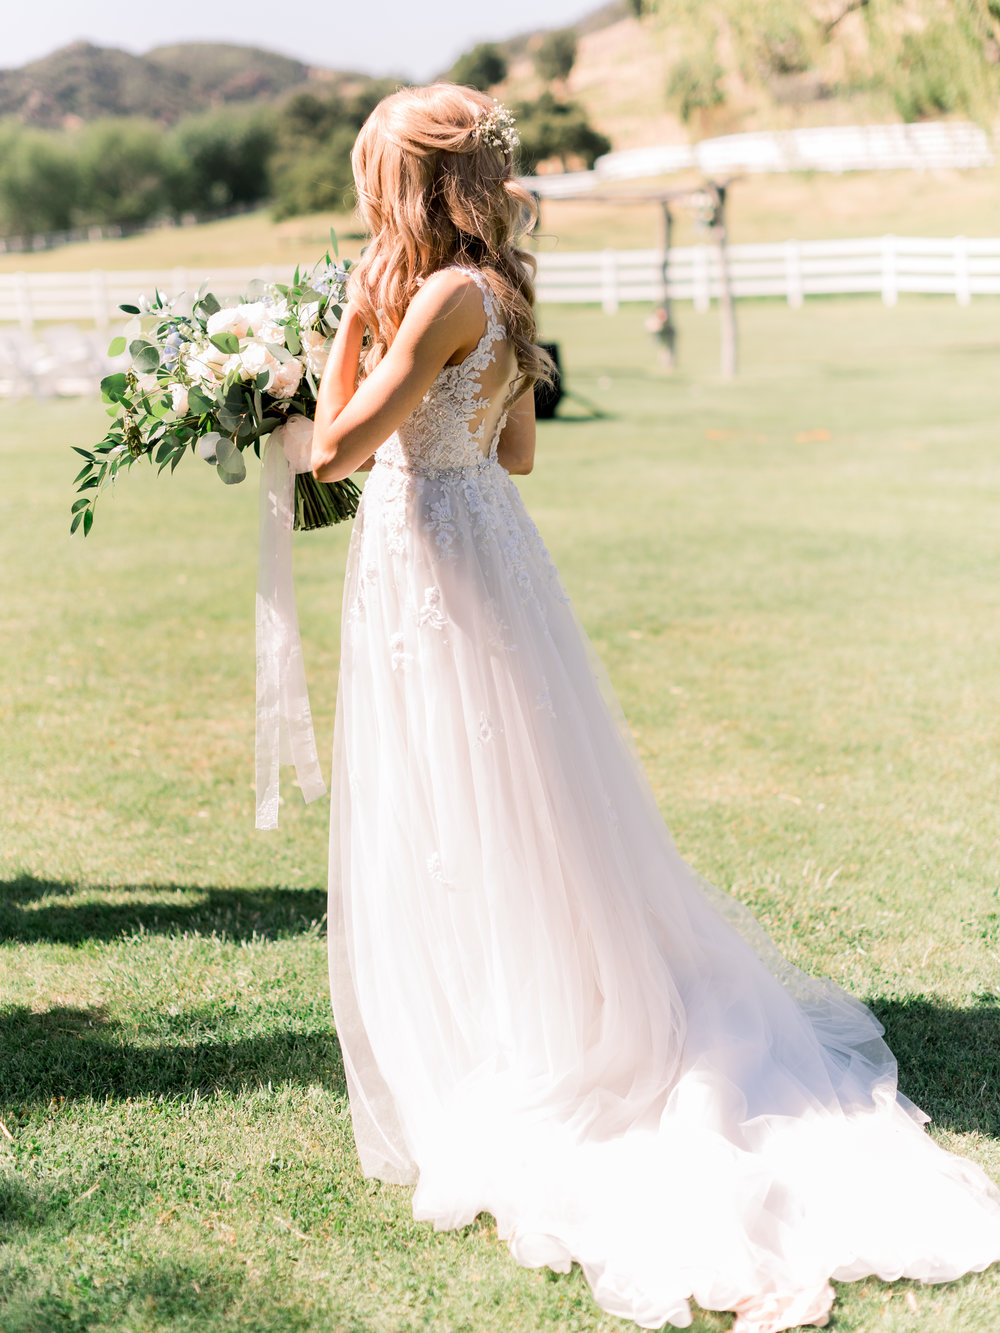 bride-walking-through-the-grass.jpg